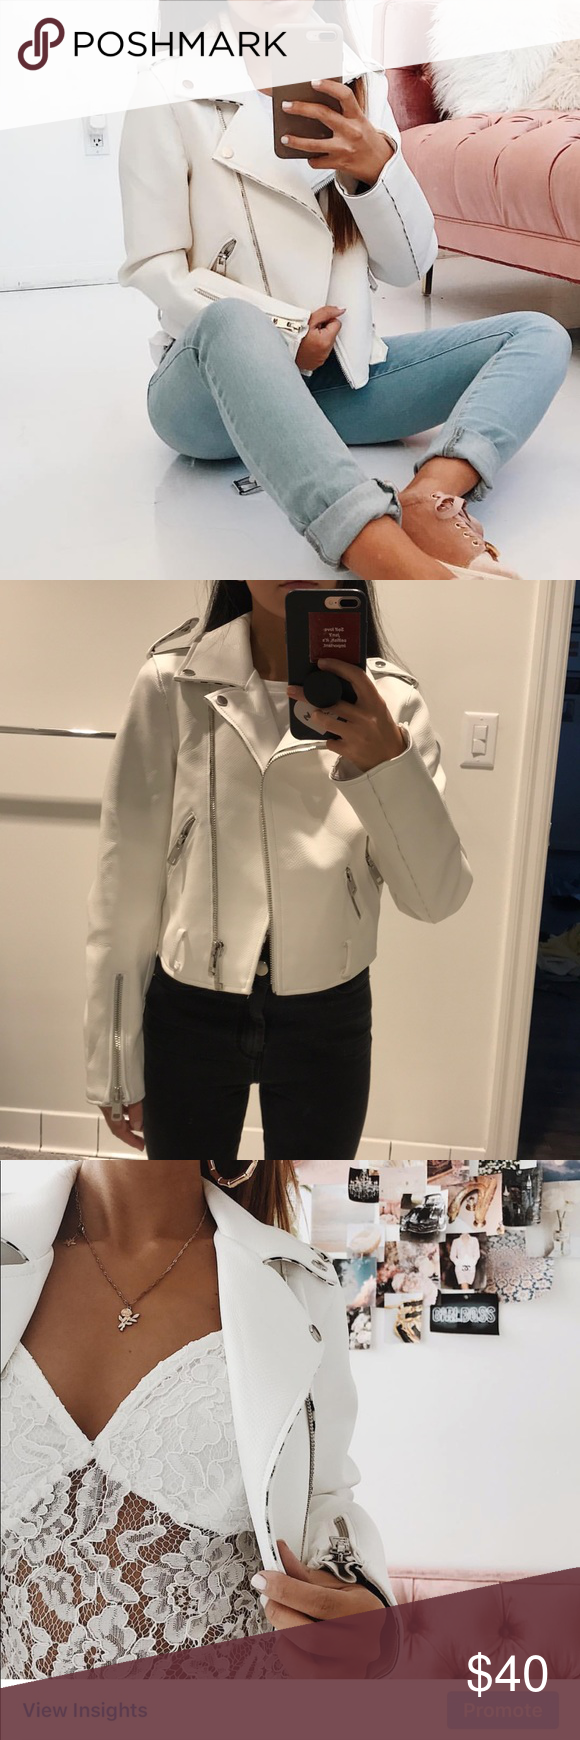 white faux leather jacket street wear/model vibes 💕💕 Zara